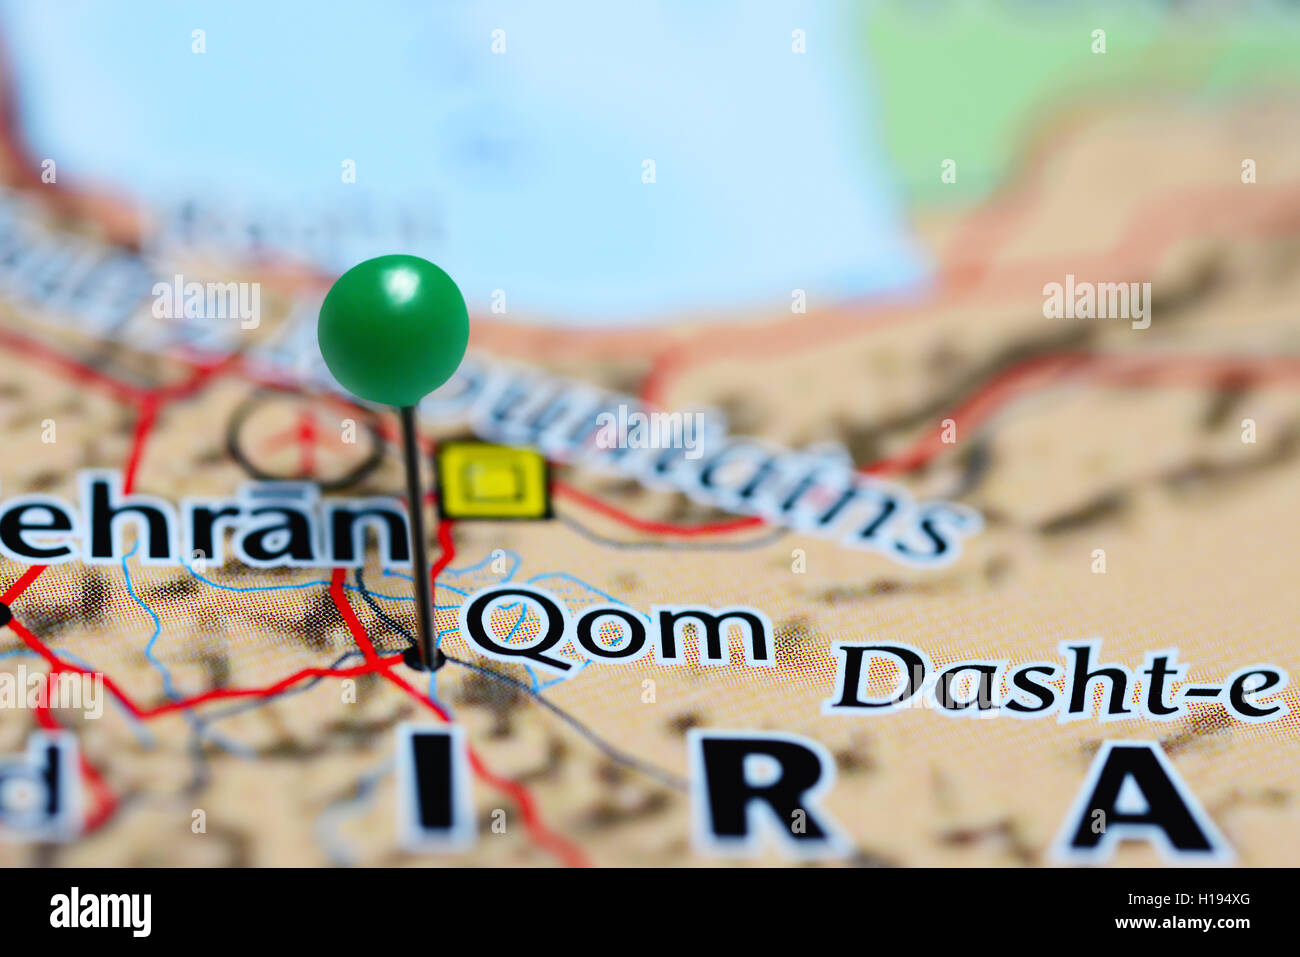 Qom pinned on a map of Iran